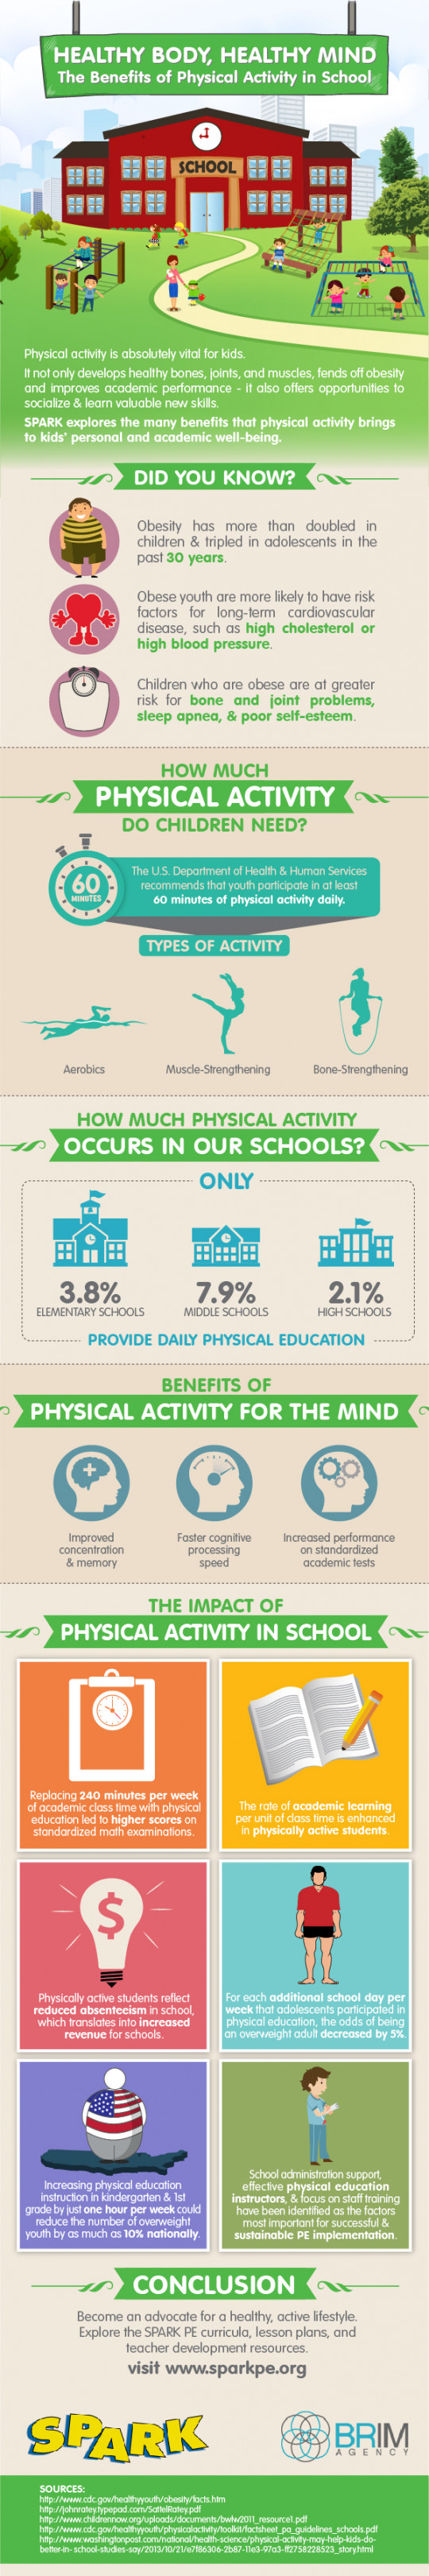 Healthy Body, Healthy Mind - The Benefits of Physical Activity in School